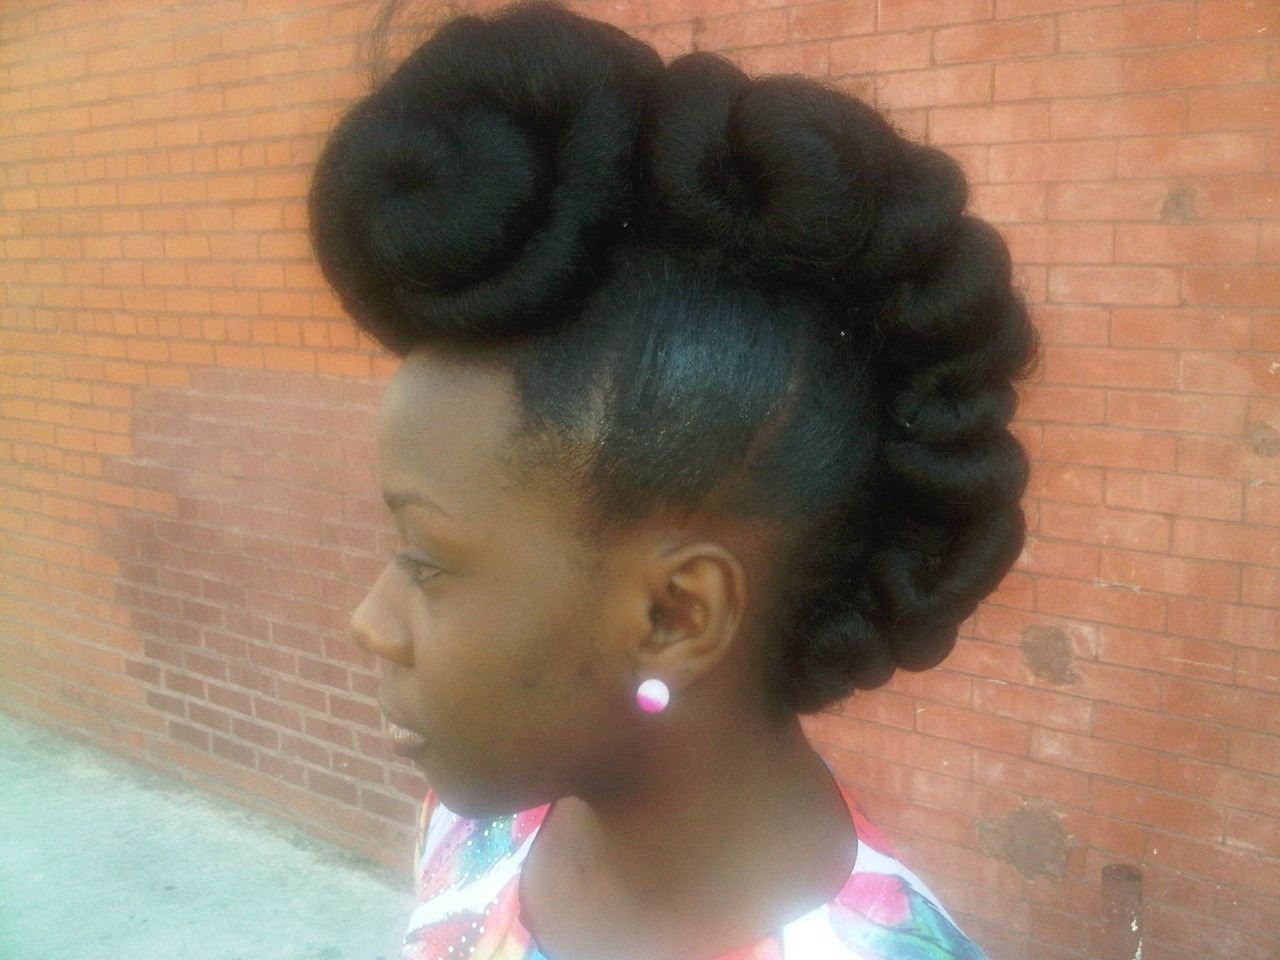 Natural Hair on The Corner- Intricate Updo I walked pass this girl yesterday and had to stop and ask her to take a picture. She was just a pint sized lil thing but her hair made her look 6ft tall. I mean the hair had a life of its own. Imagine someone walking around with this hair in jeans and a tee. I loved it. I think its very creative and would make for great photo shoot hair. Upon getting closer I realized the top twisted part was created with synthetic braiding hair.  Would you try this ladies?